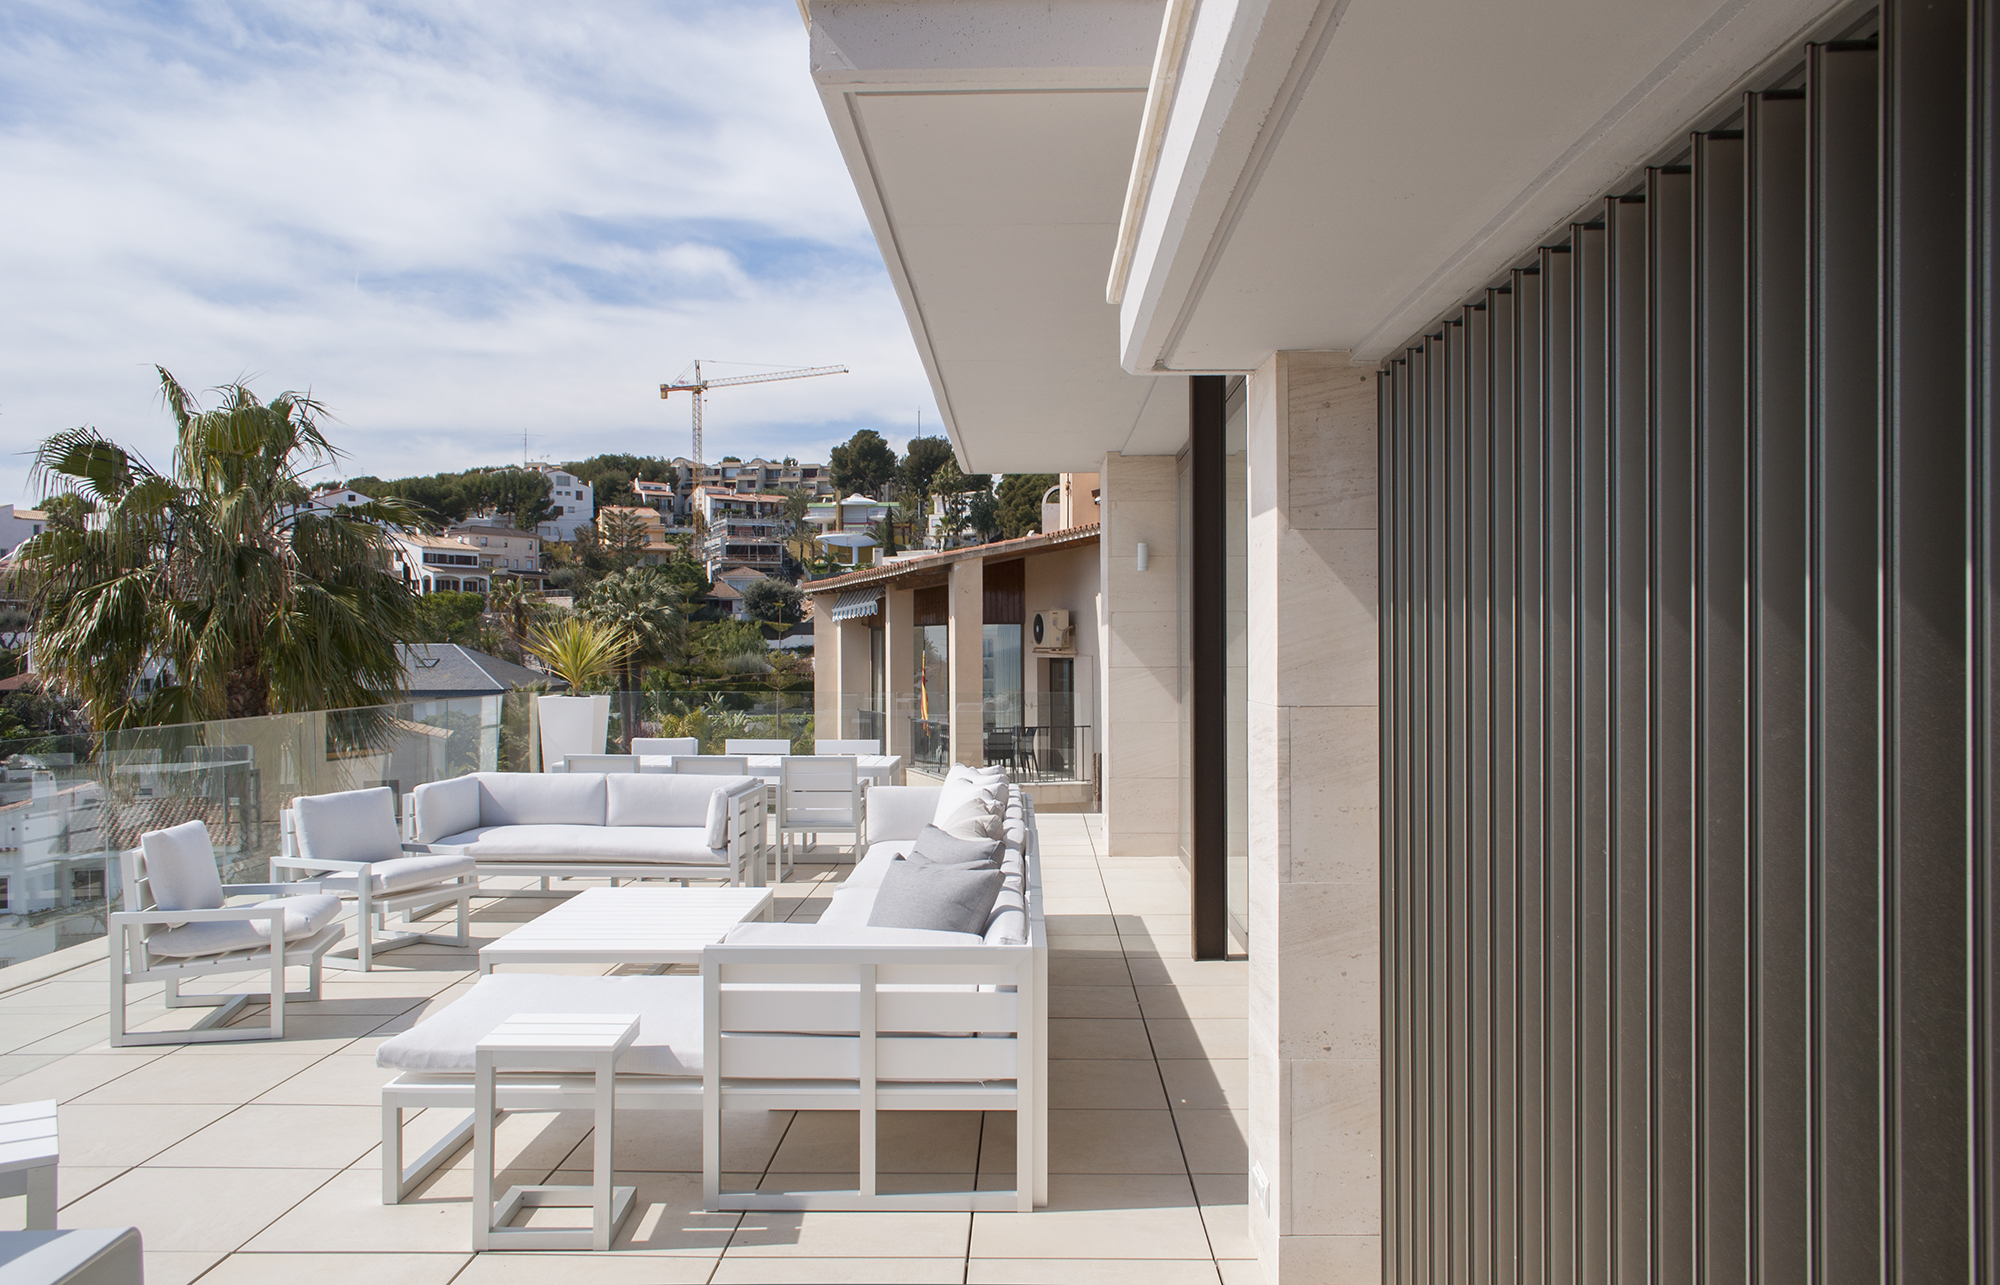 14-rardo-architects-houses-in-sitges-volume-terrace